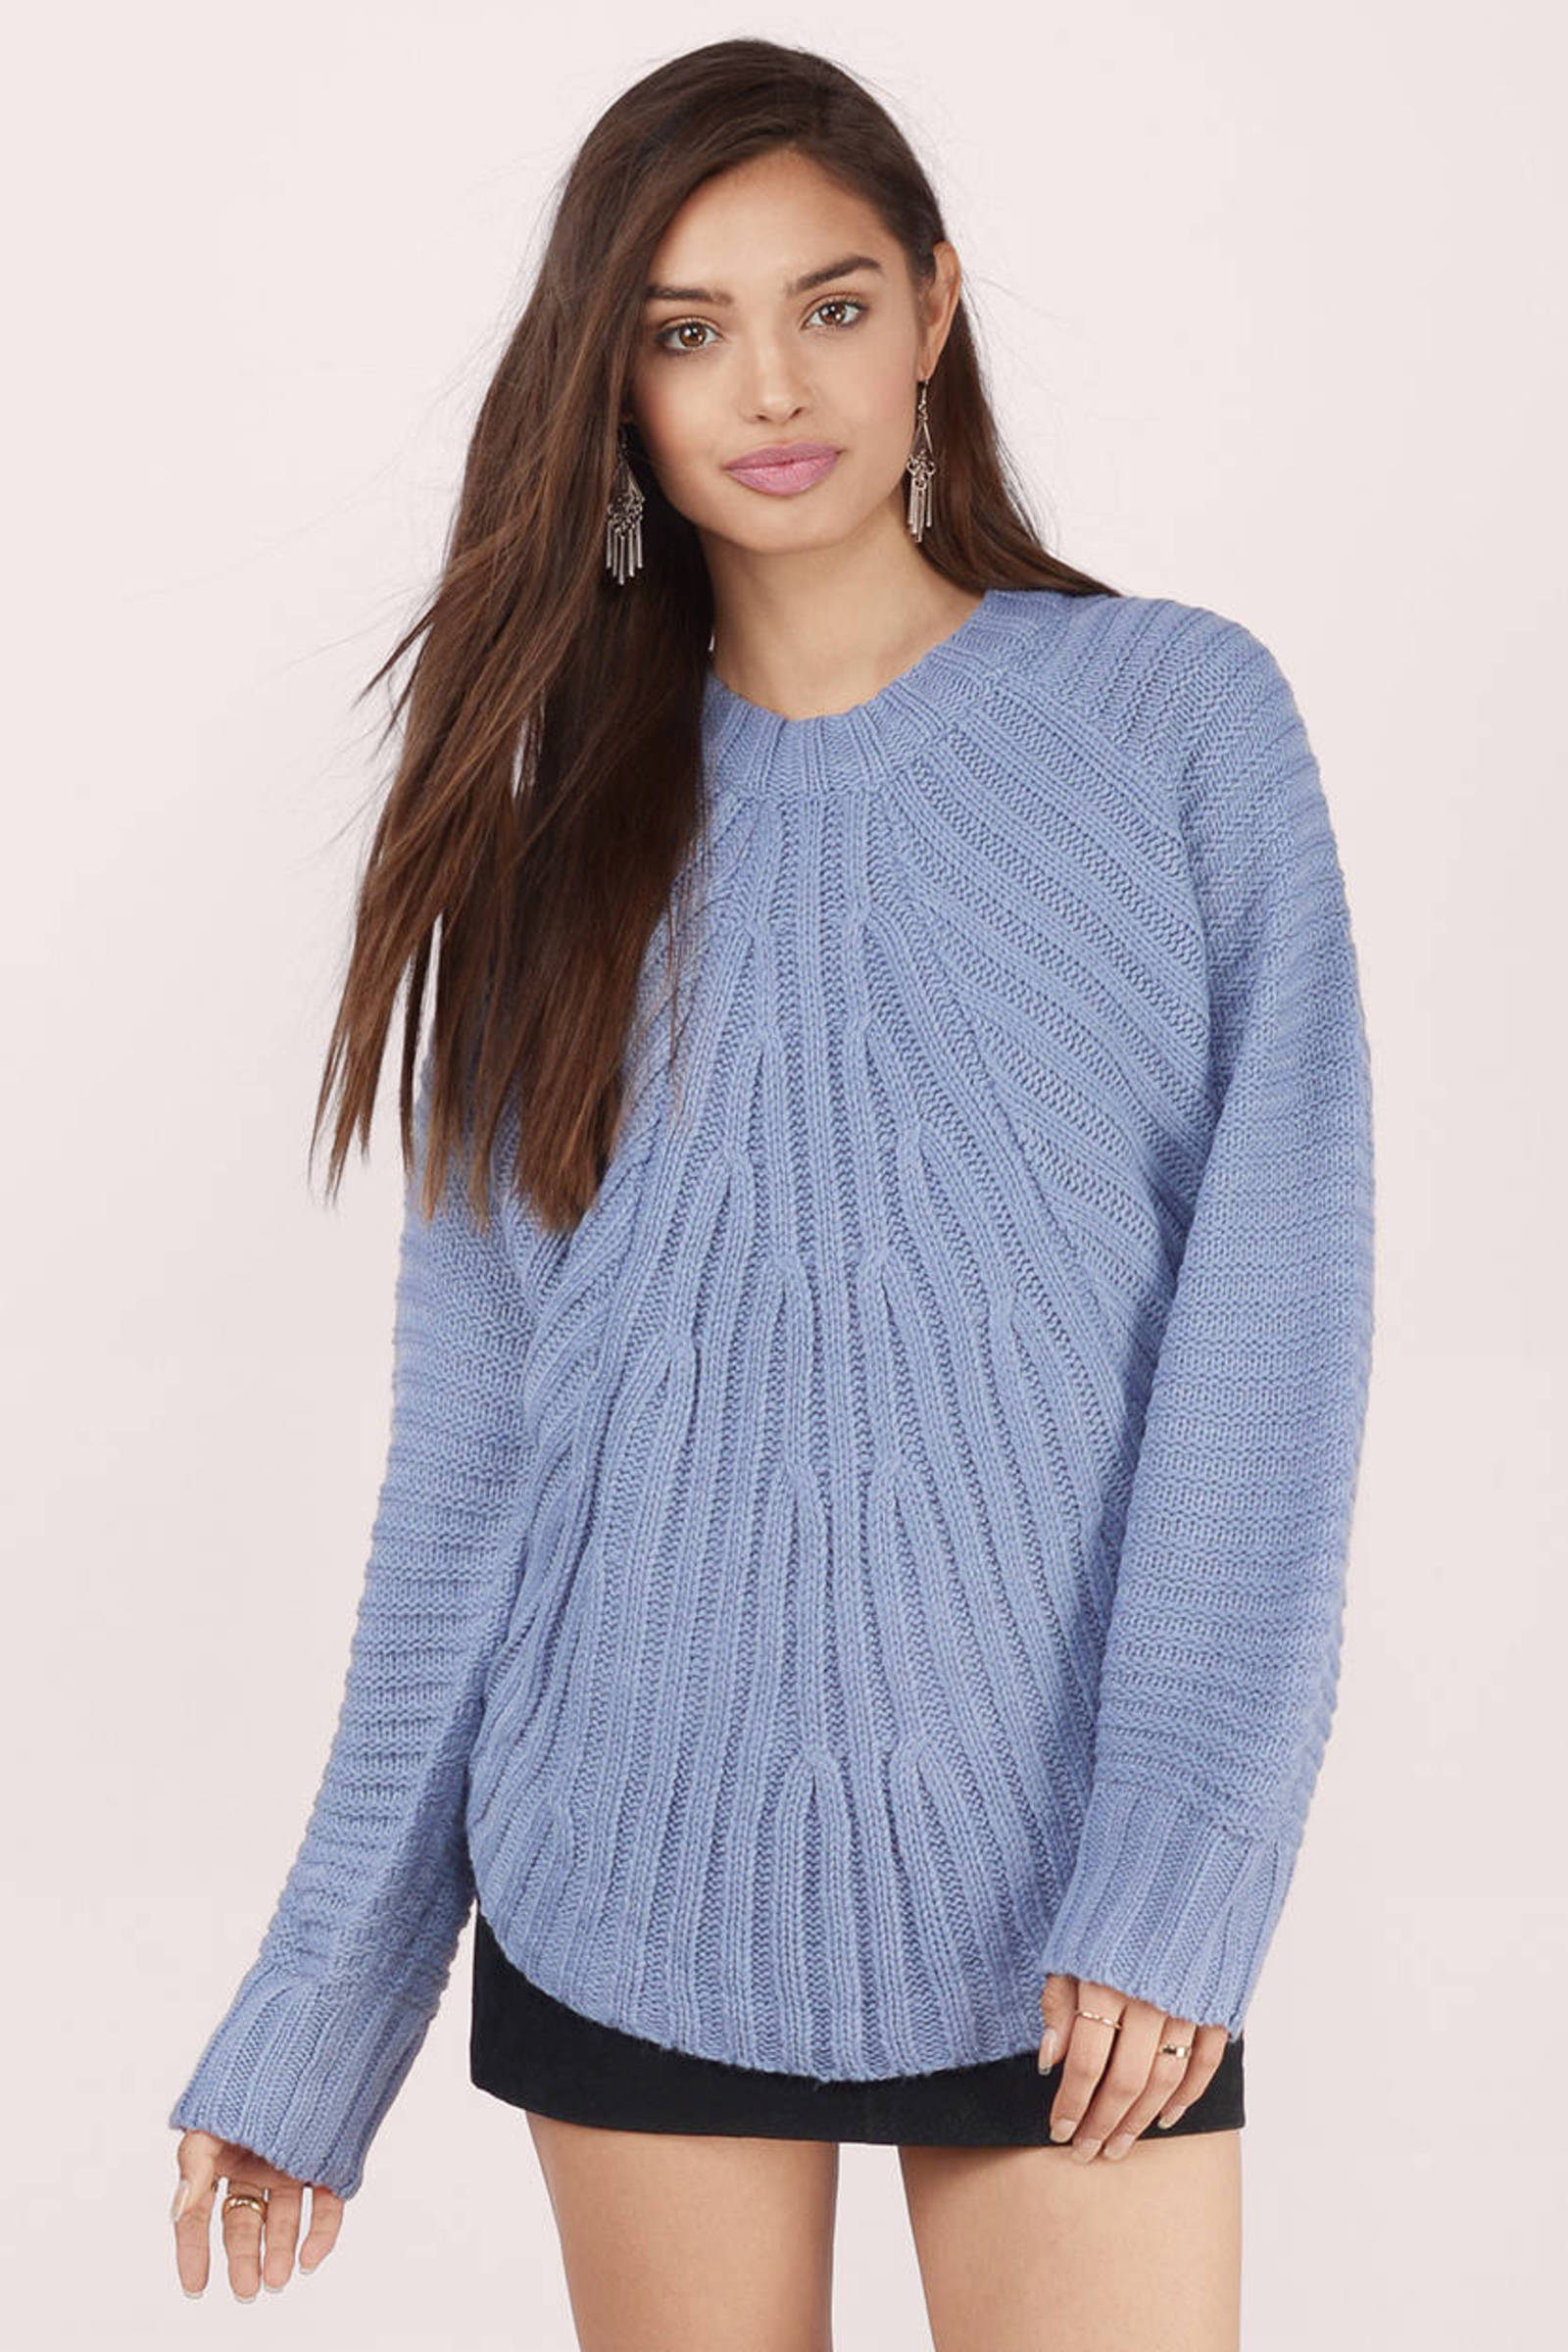 Light Blue Sweater - Blue Sweater - Knitted Sweater - $21.00